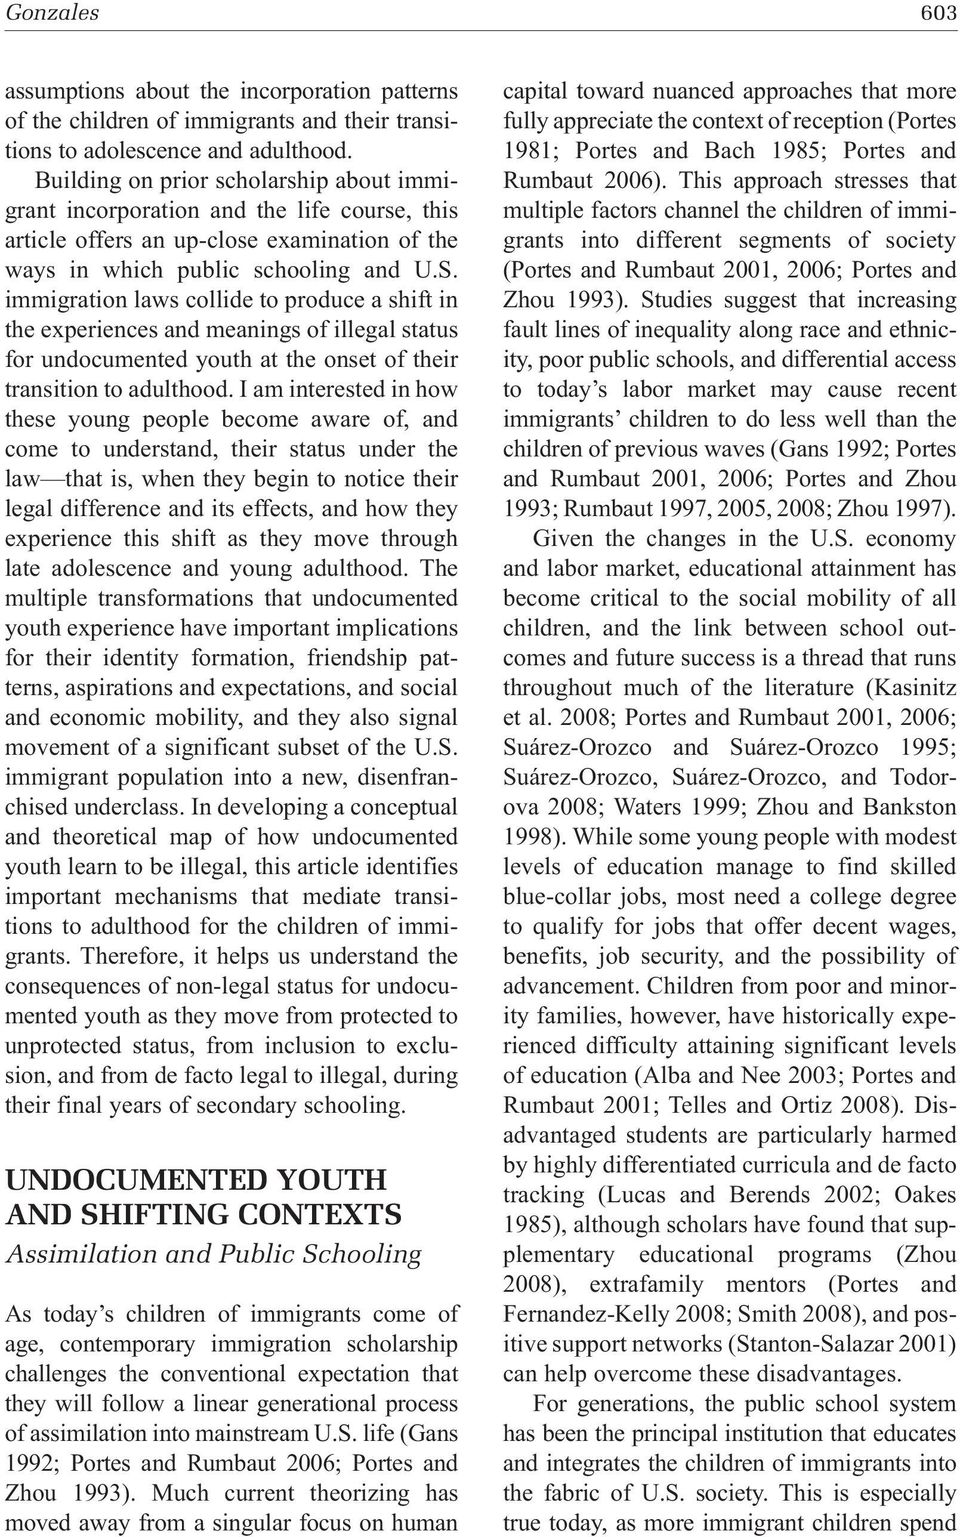 immigration laws collide to produce a shift in the experiences and meanings of illegal status for undocumented youth at the onset of their transition to adulthood.